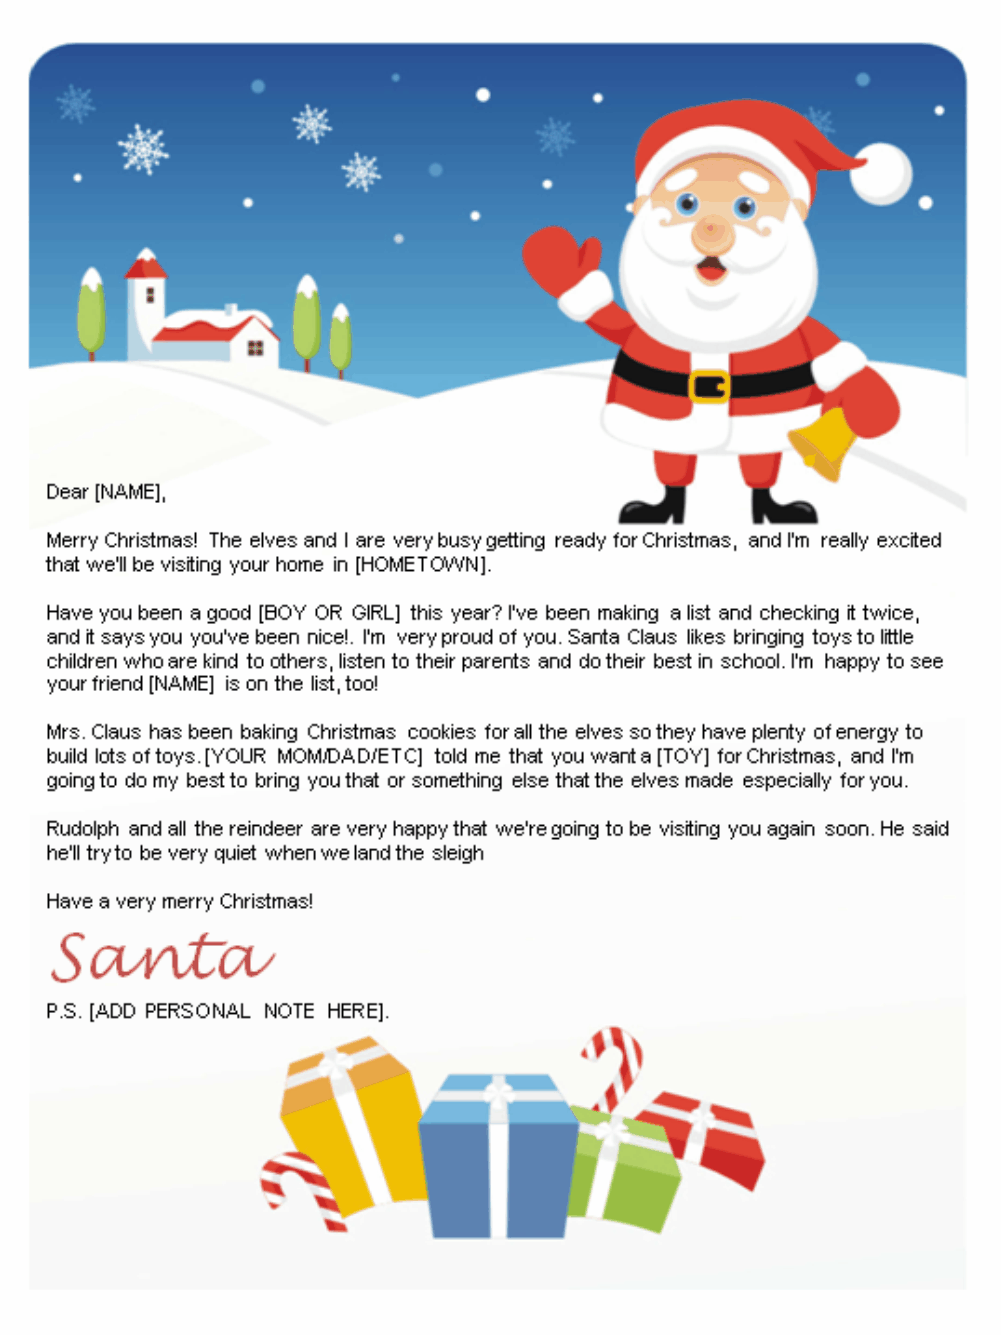 Free letters from santa santa letters to print at home gifts free printable santa letters for kids north pole zone letter from dear best free home design idea inspiration alramifo Choice Image